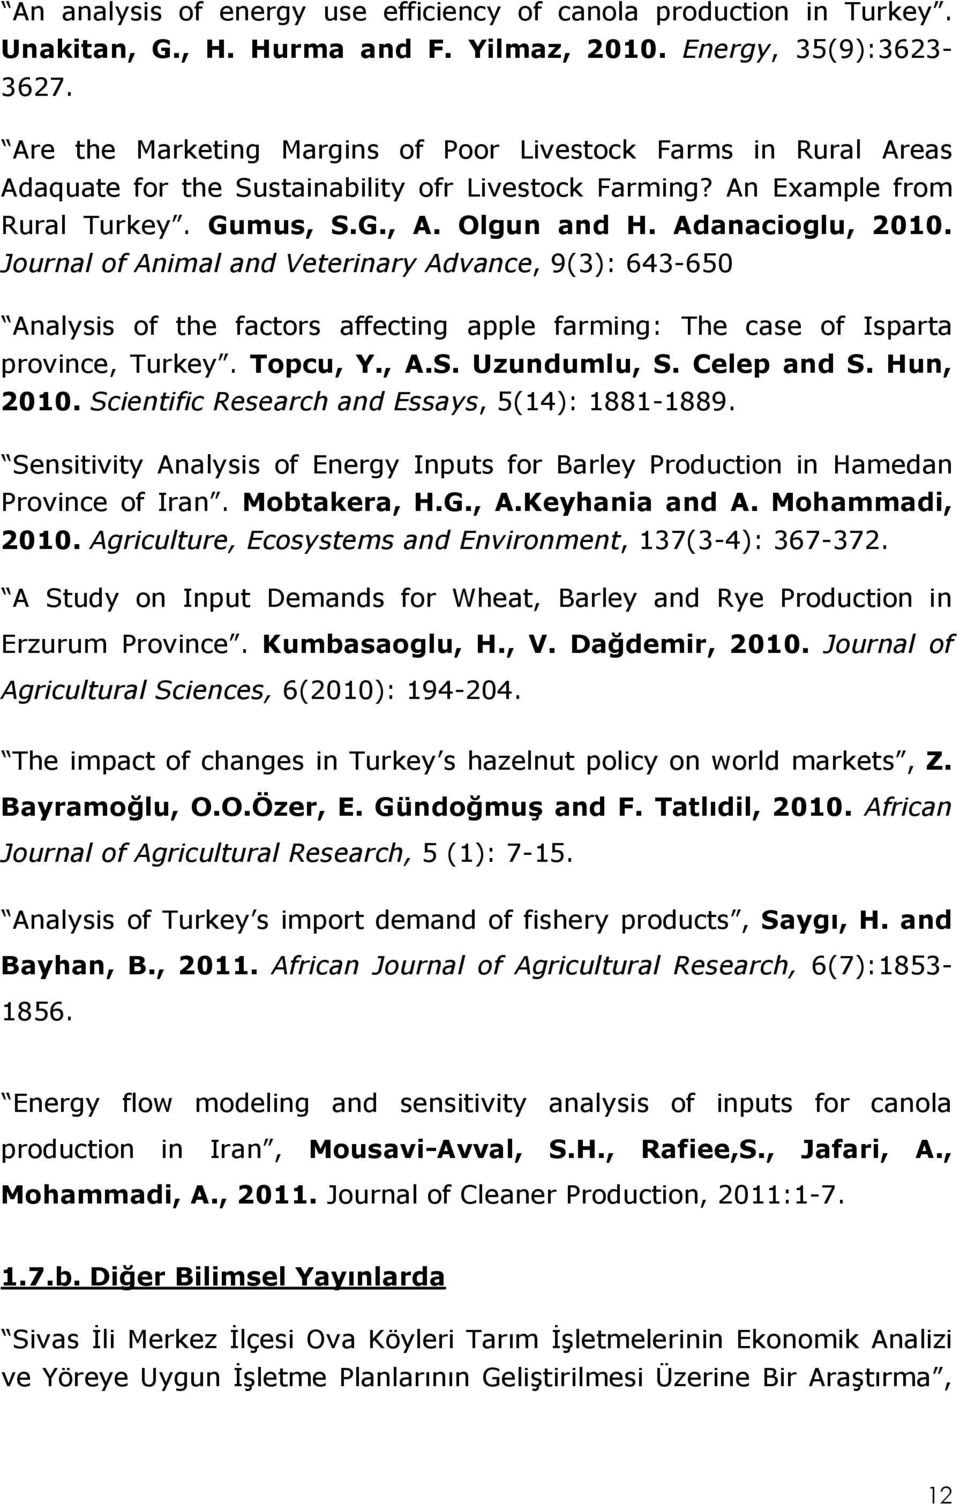 Journal of Animal and Veterinary Advance, 9(3): 643-650 Analysis of the factors affecting apple farming: The case of Isparta province, Turkey. Topcu, Y., A.S. Uzundumlu, S. Celep and S. Hun, 2010.